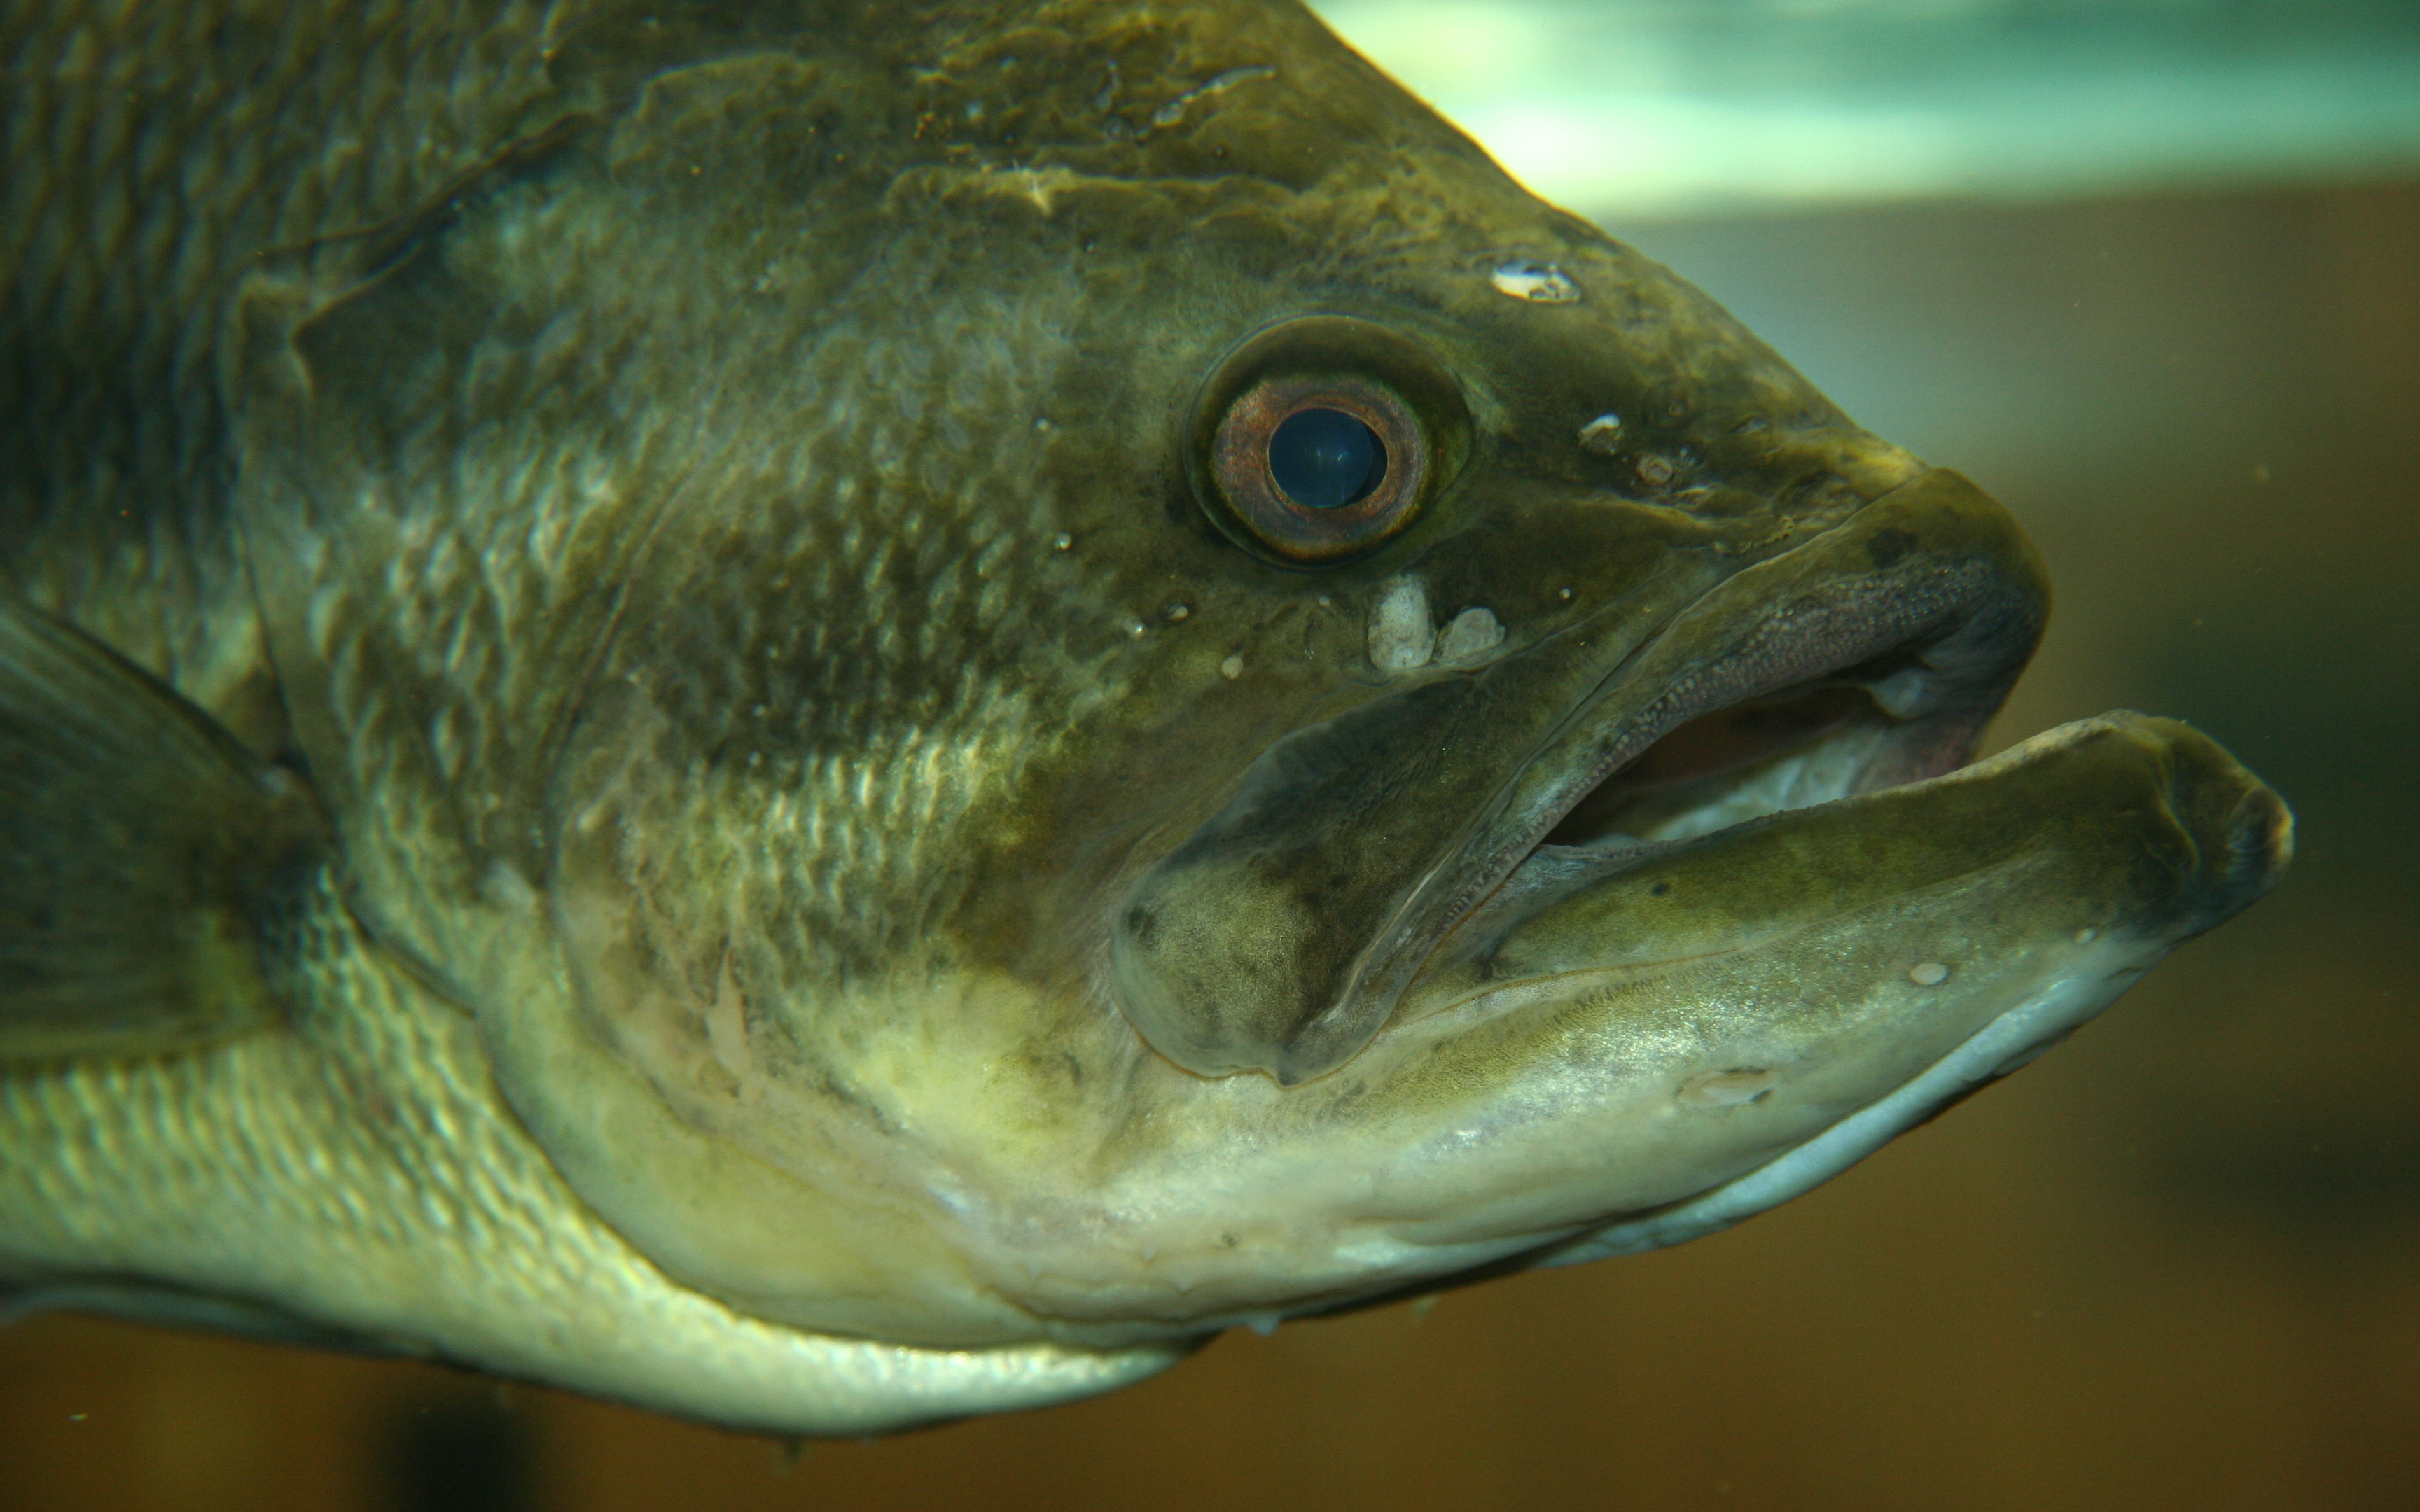 Largemouth bass photos and wallpapers Nice Largemouth 3456x2160